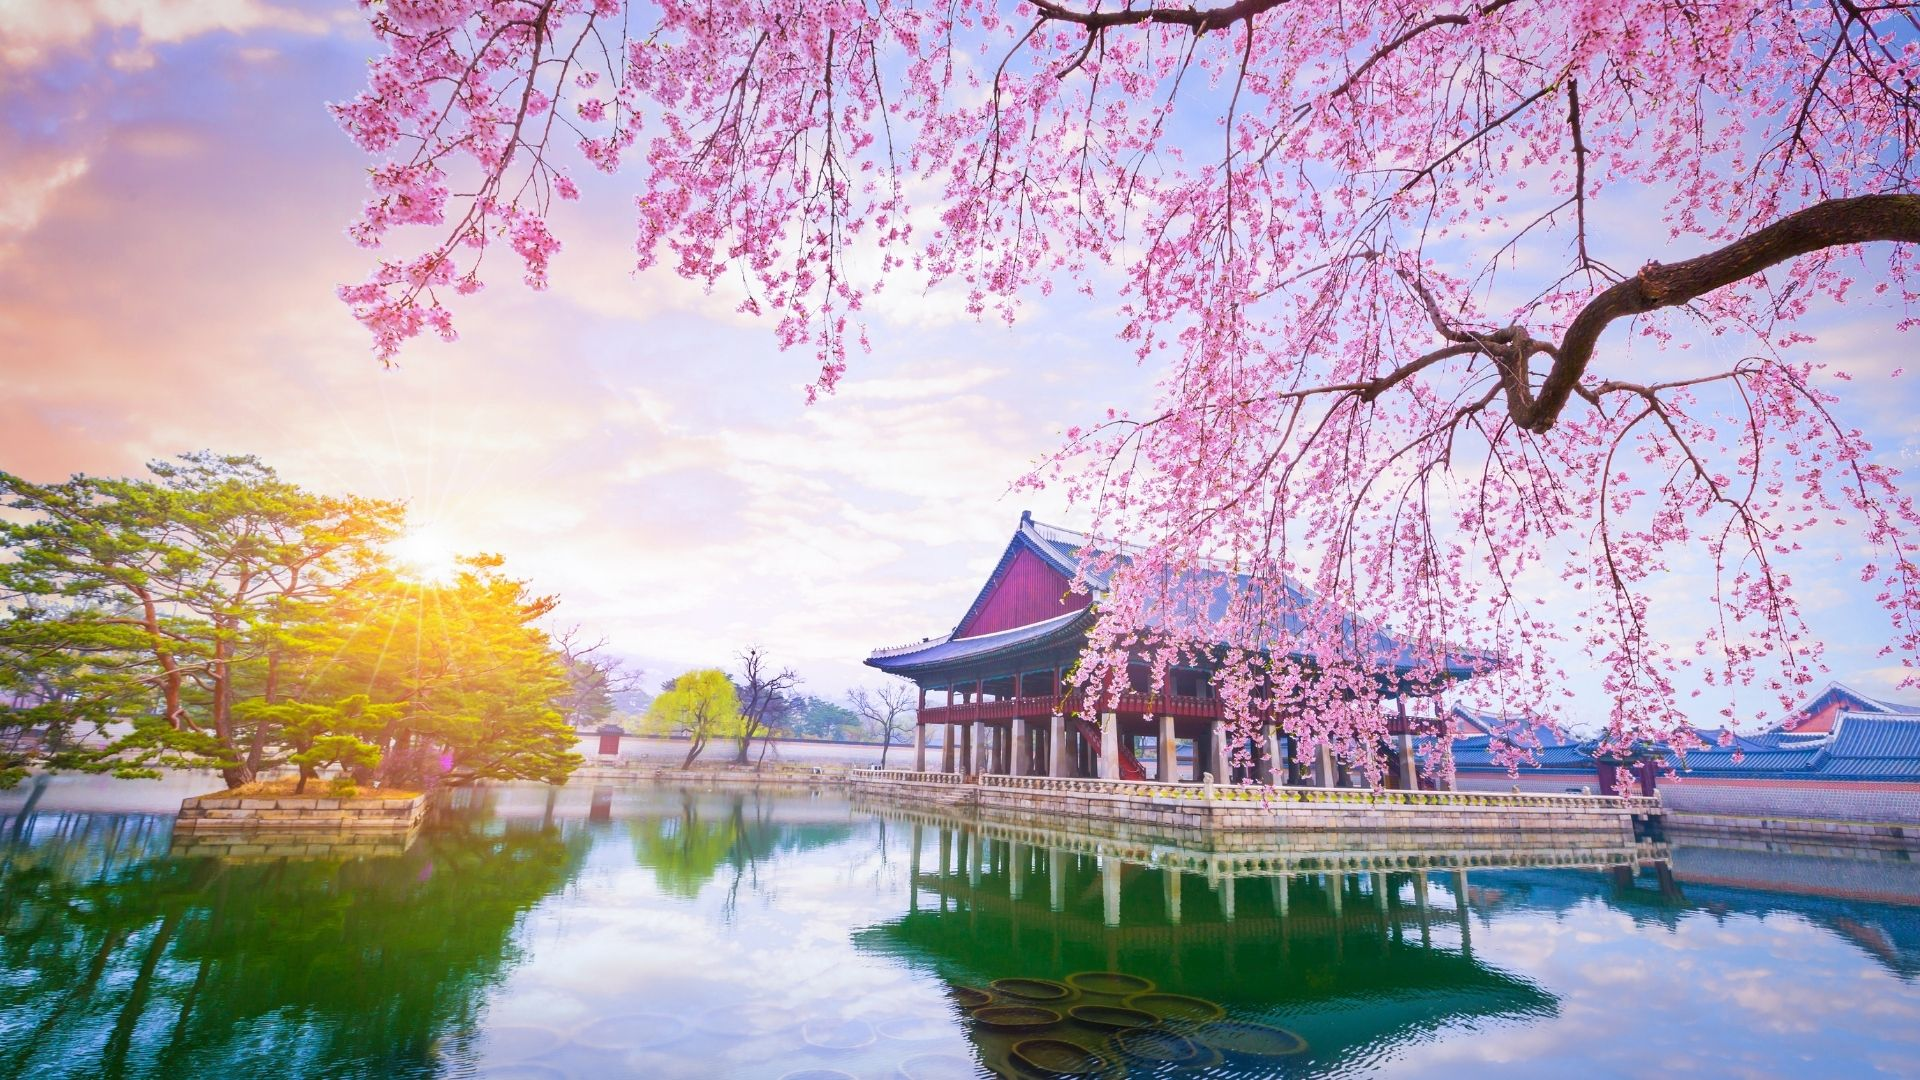 9 Stunning Places to Visit in South Korea in 2021